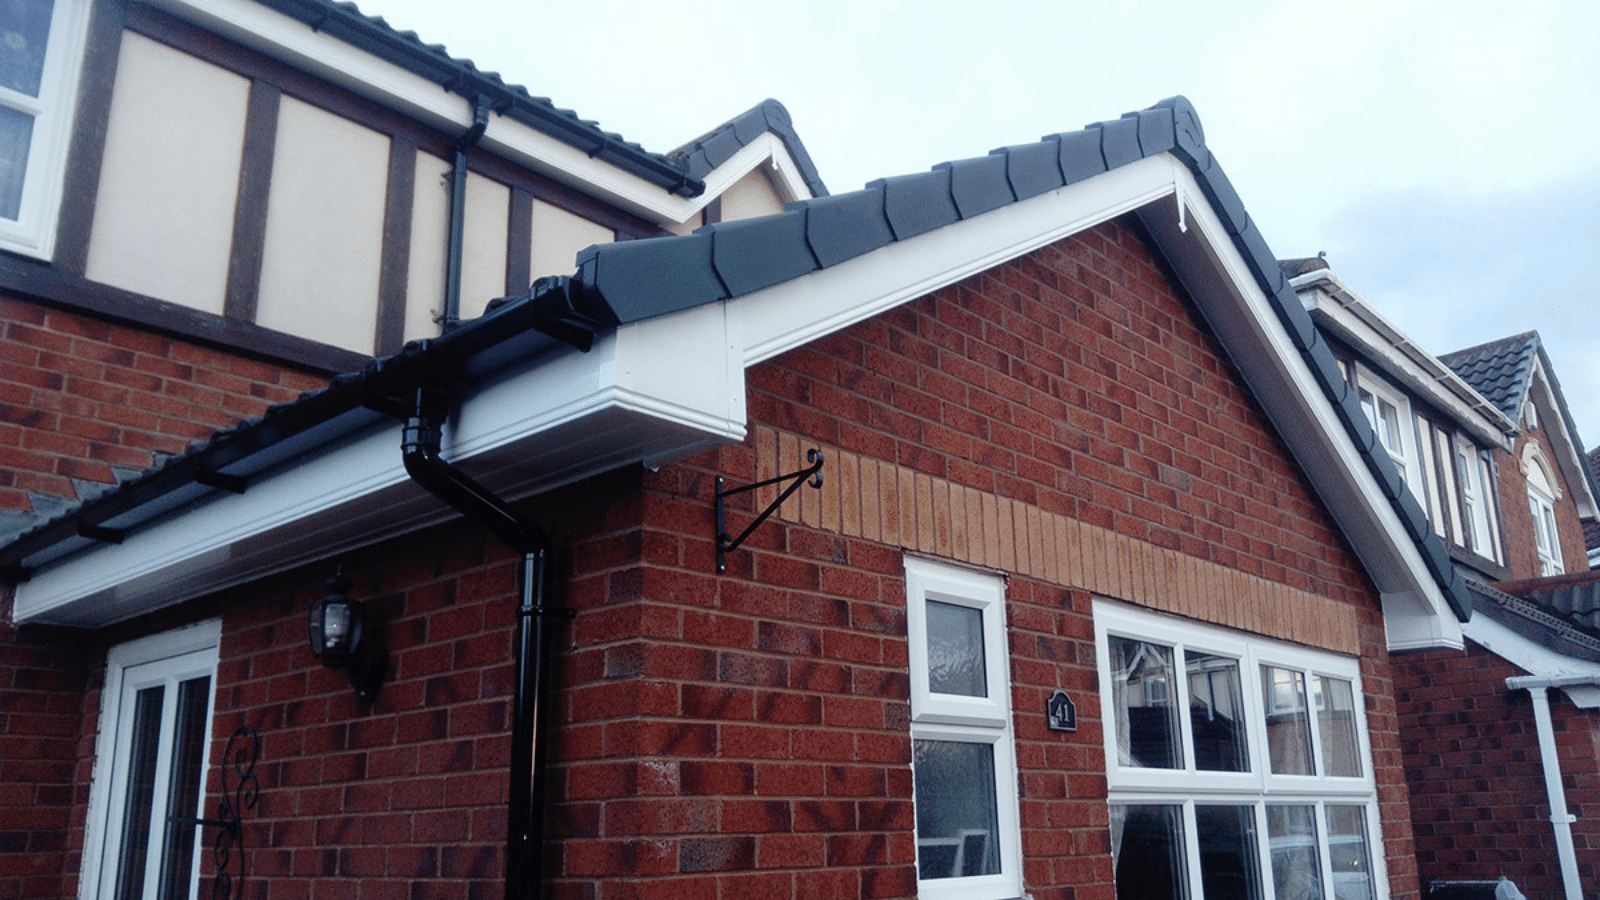 Benefits of a Dry Verge System